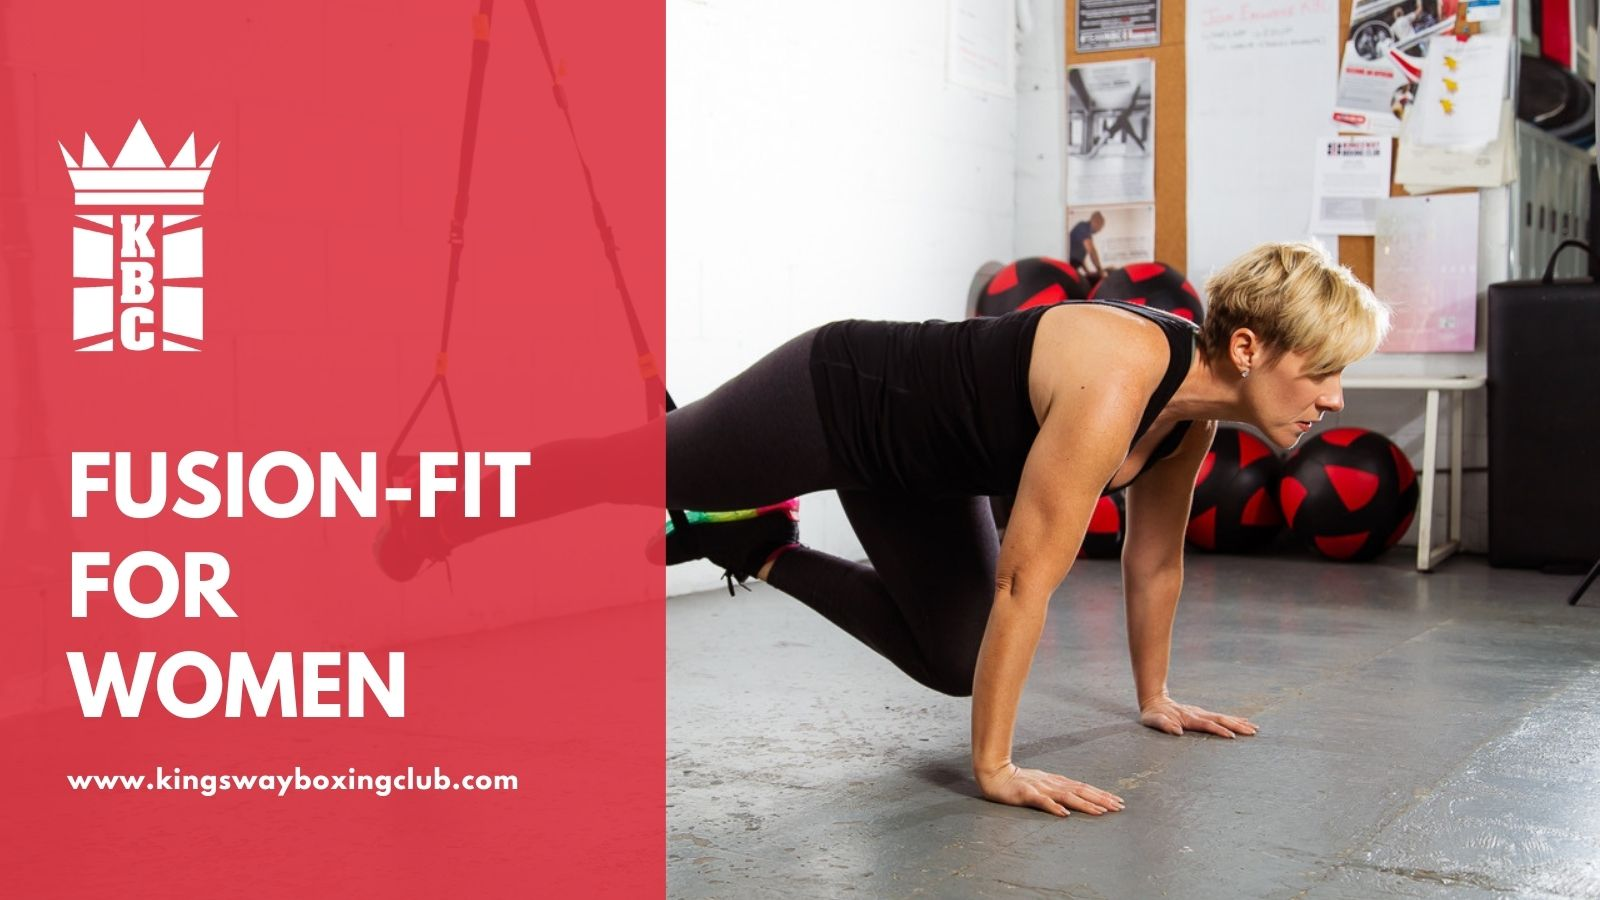 Fusion-Fit For Women Is BACK!